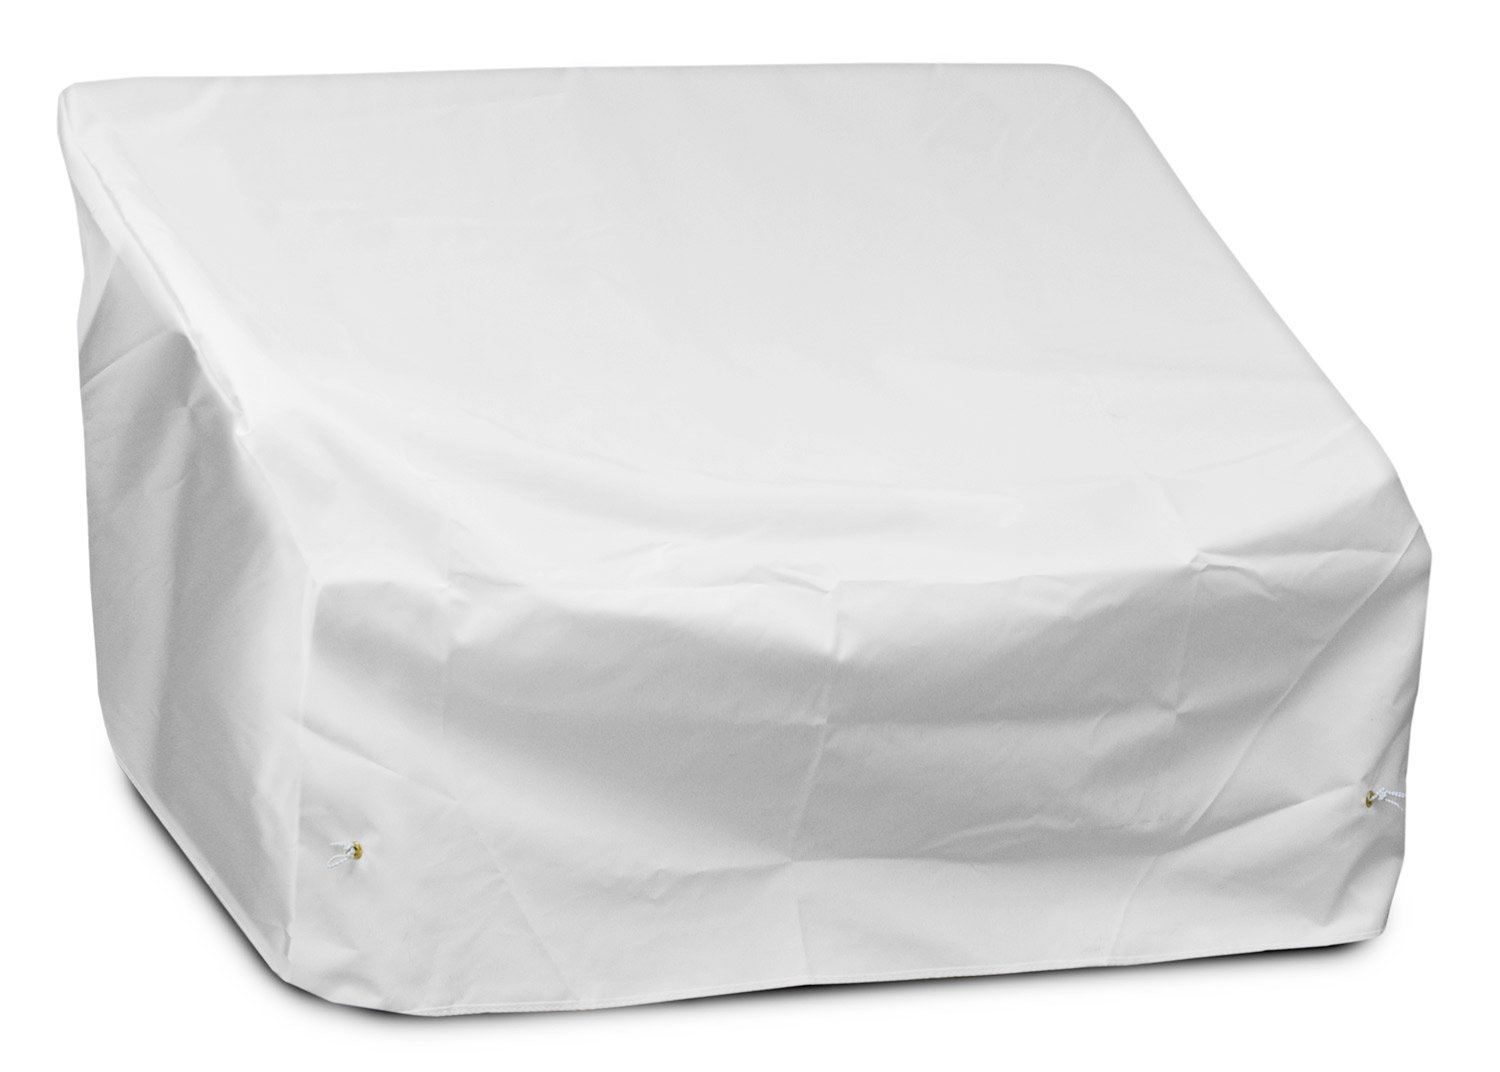 KoverRoos Weathermax 19147 Loveseat/Sofa Cover, 51-Inch Width by 33-Inch Diameter by 33-Inch Height, White